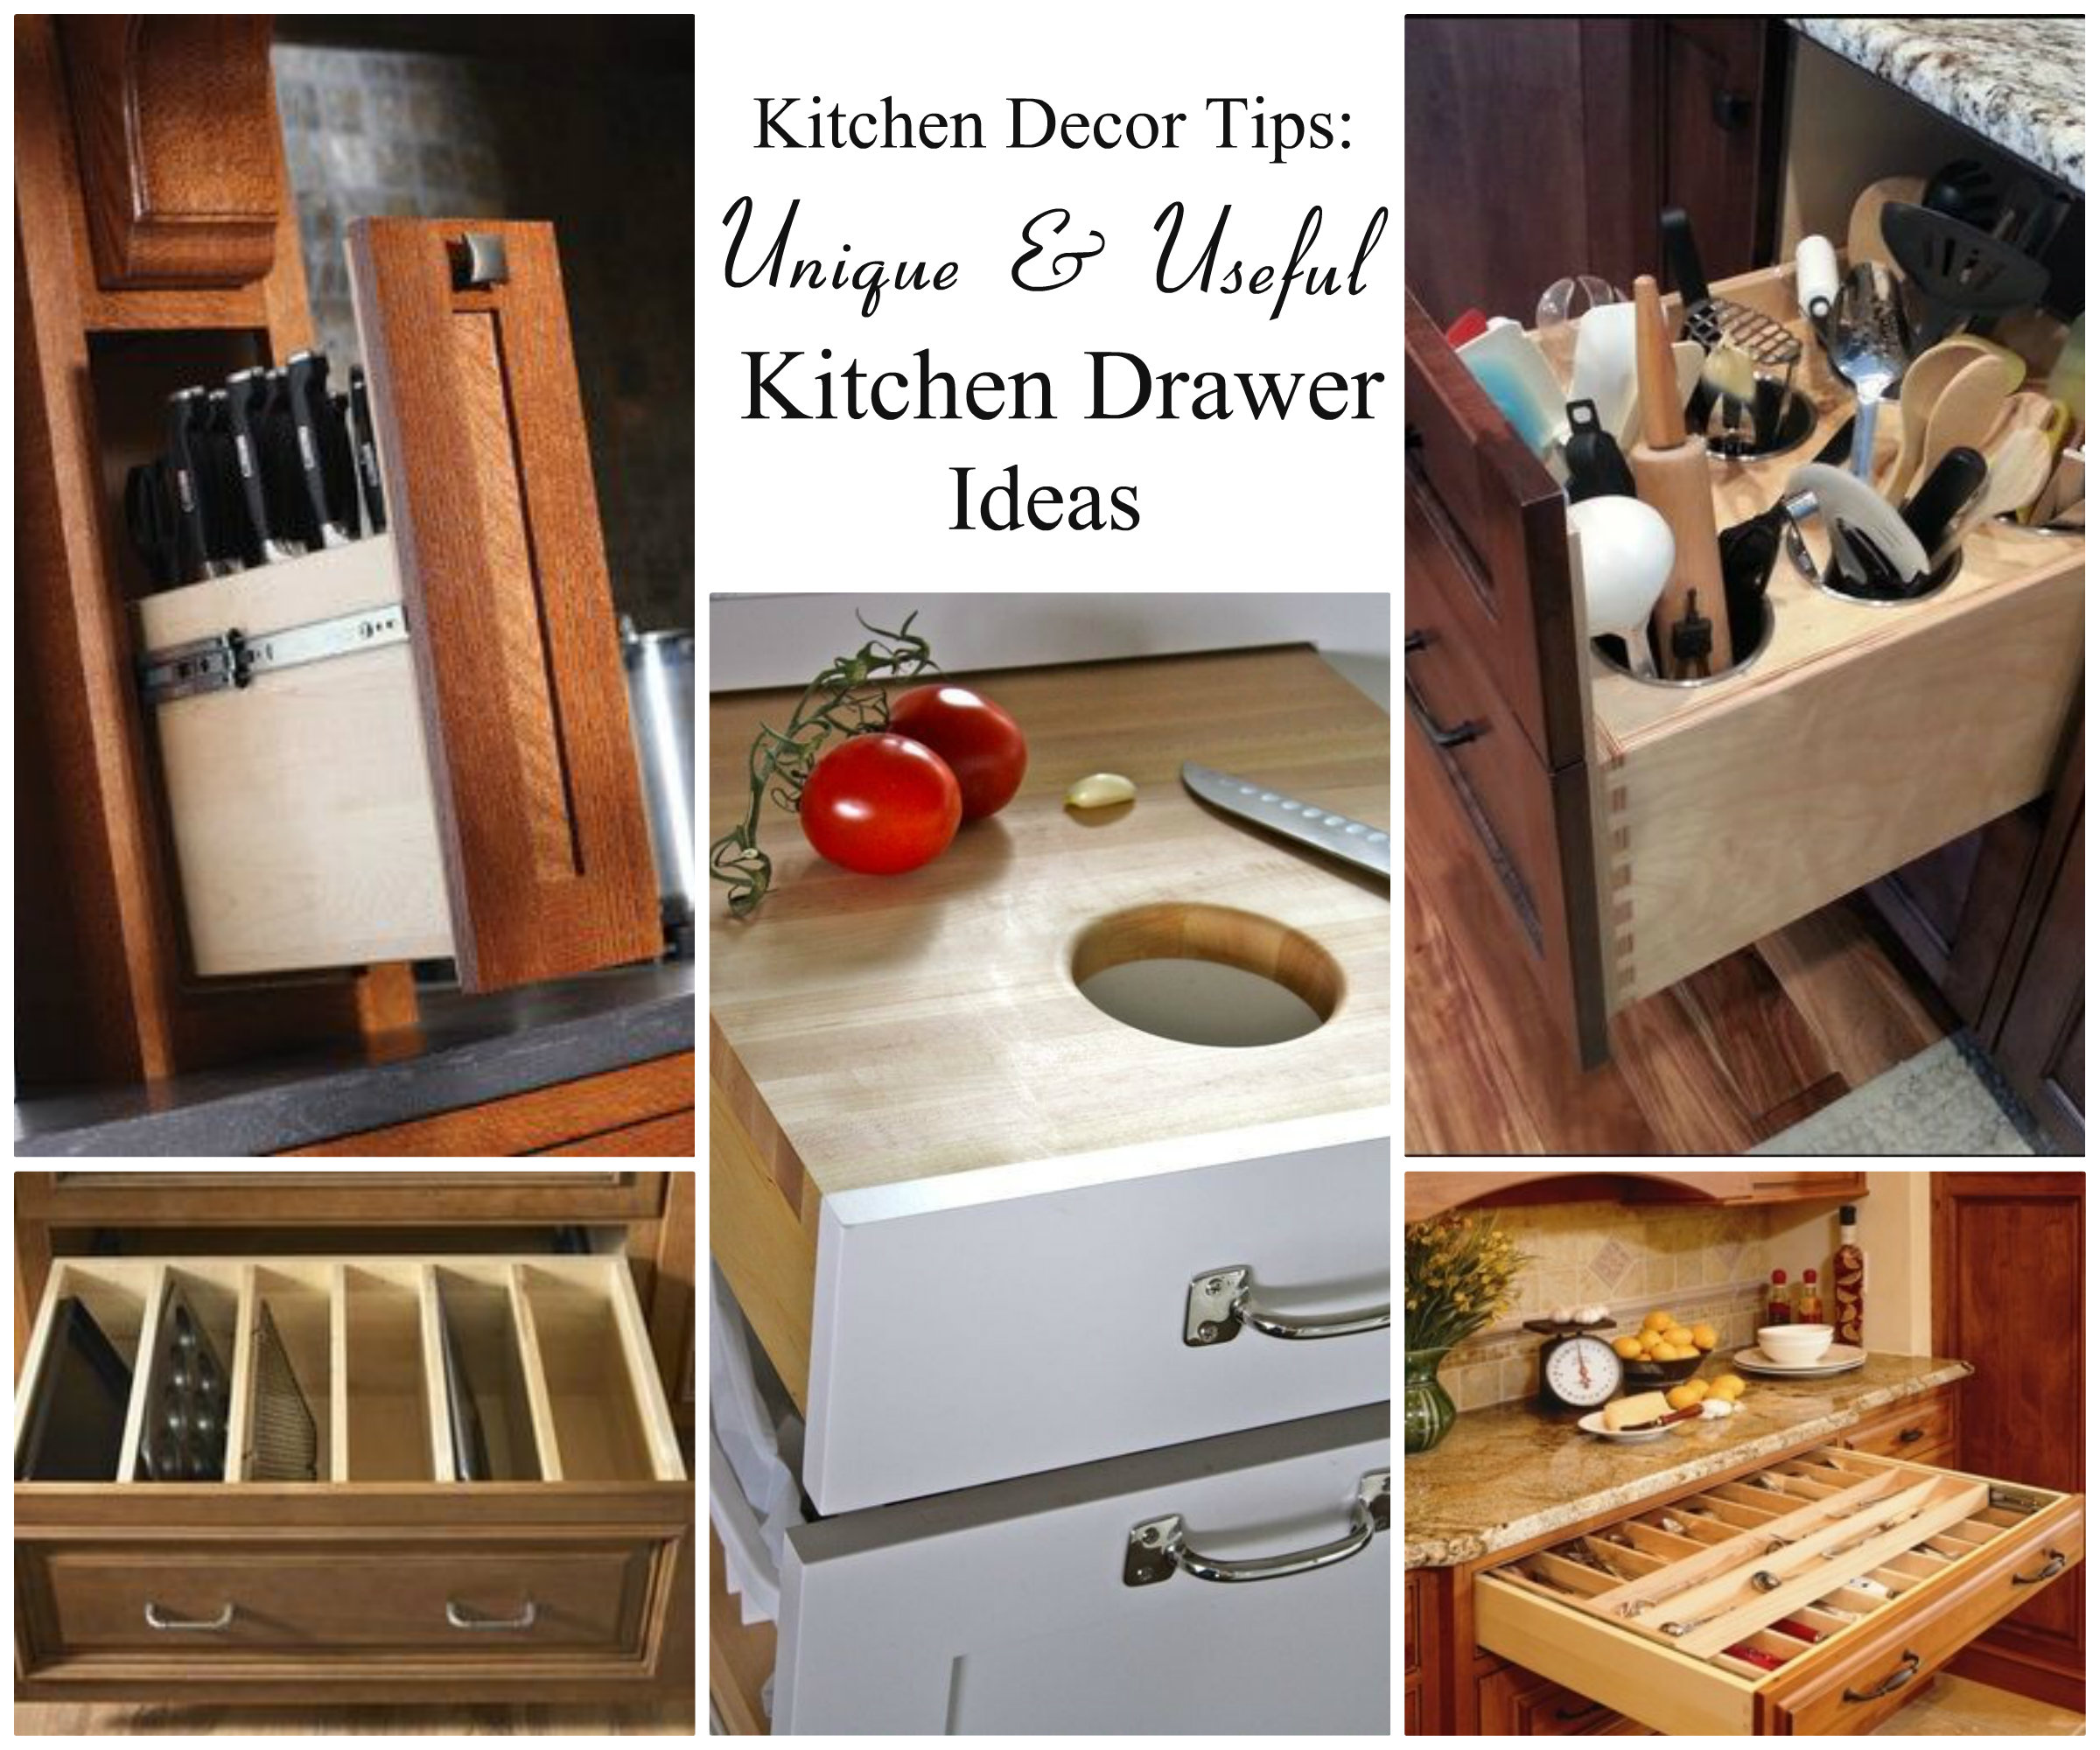 Kitchen decor tips 5 unique kitchen drawer ideas - Kitchen diy ideas ...